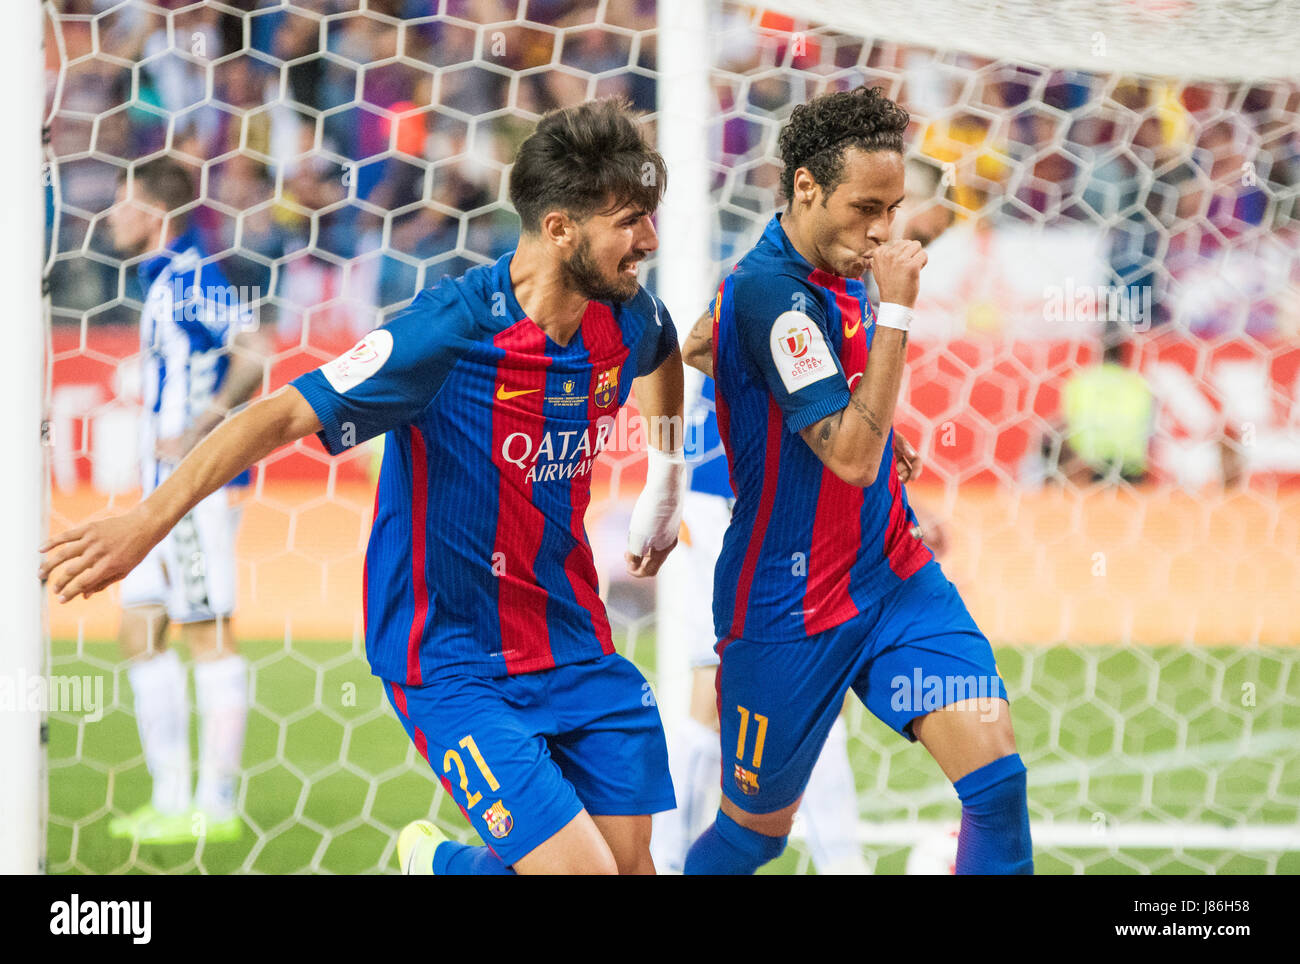 Madrid, Spain. 27th May, 2017. Neymar Jr. (FC Barcelona) celebrates his first goal during the football match of - Stock Image